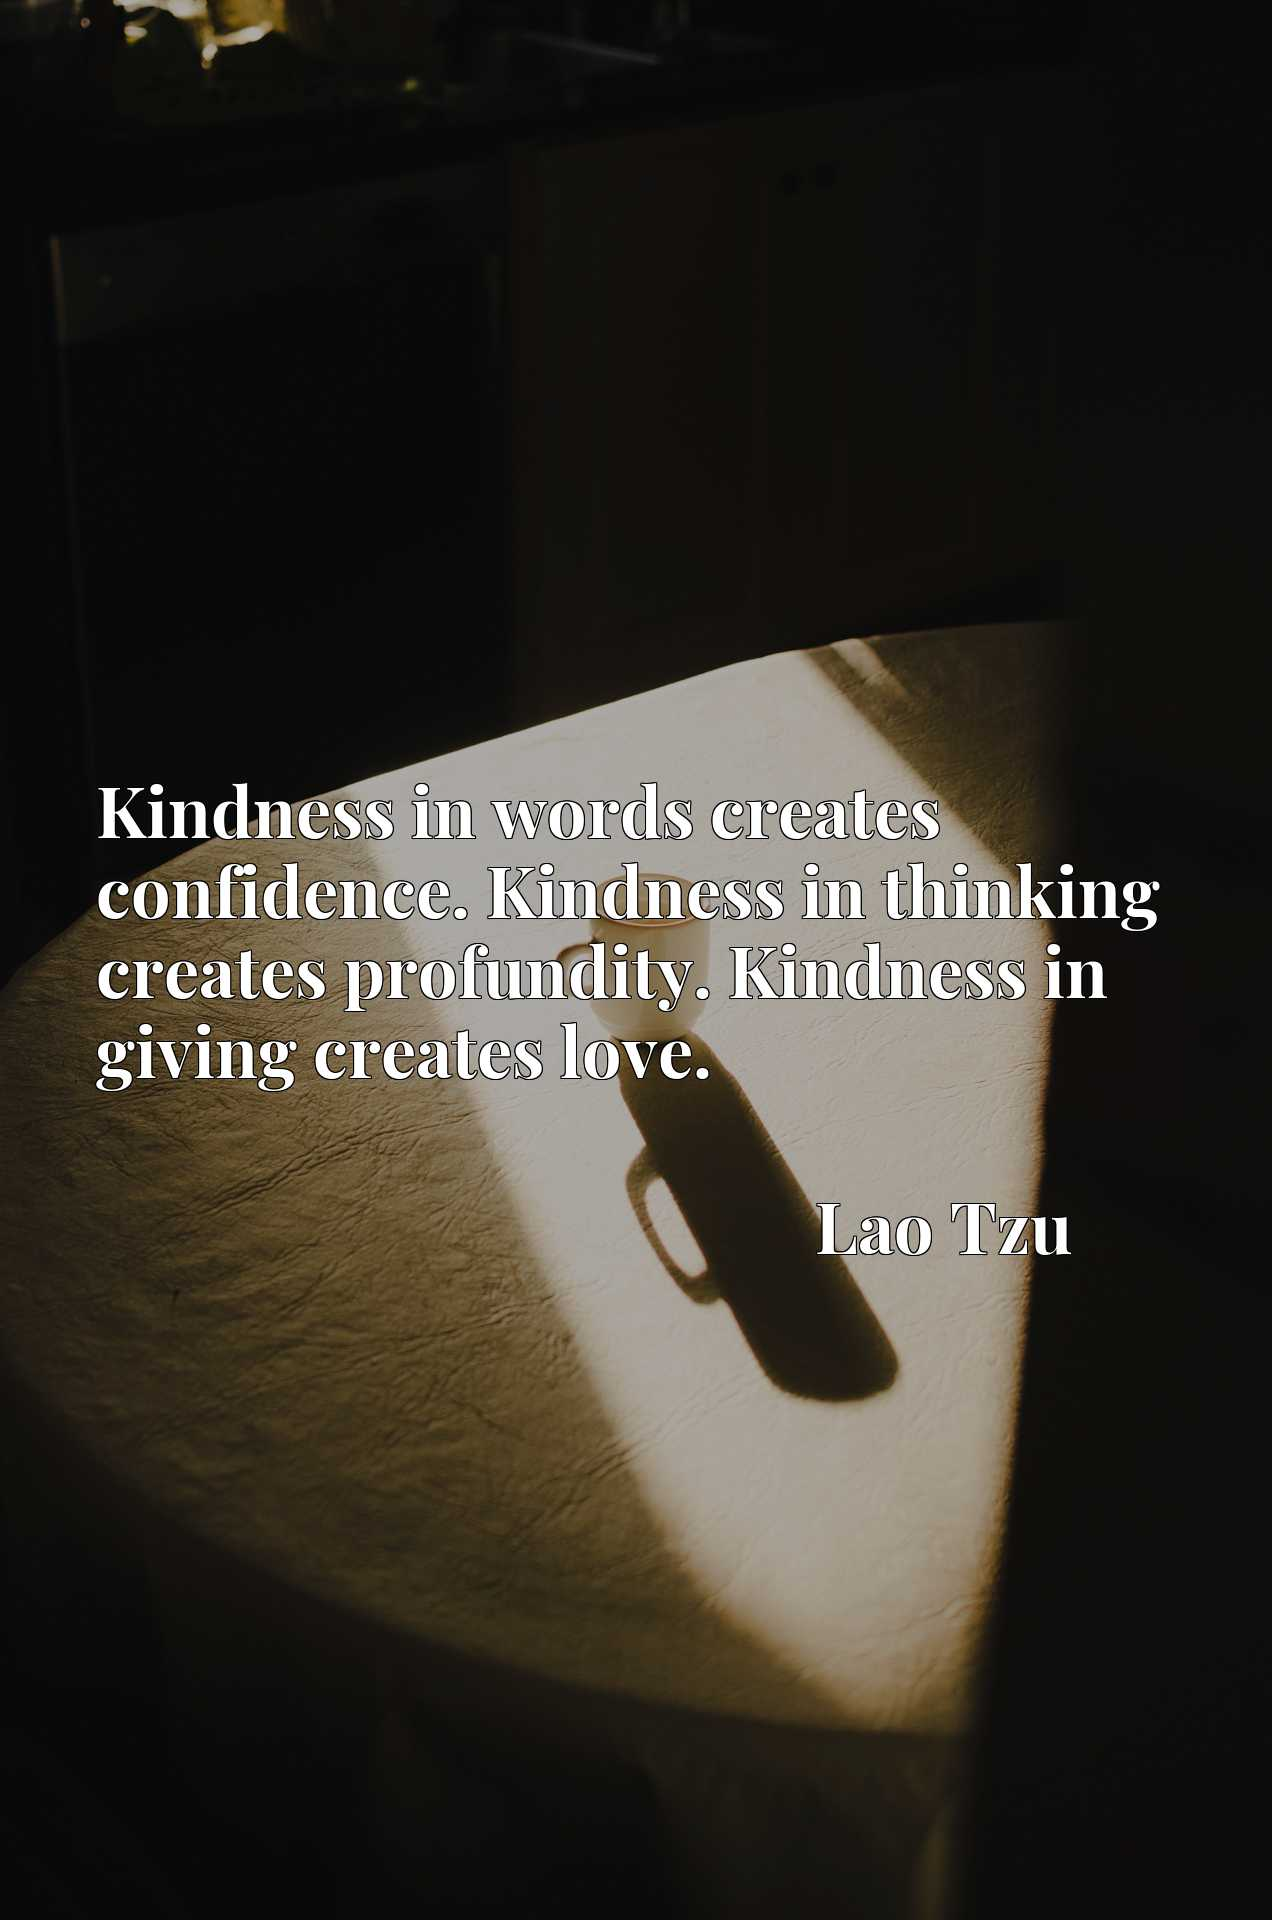 Kindness in words creates confidence. Kindness in thinking creates profundity. Kindness in giving creates love.